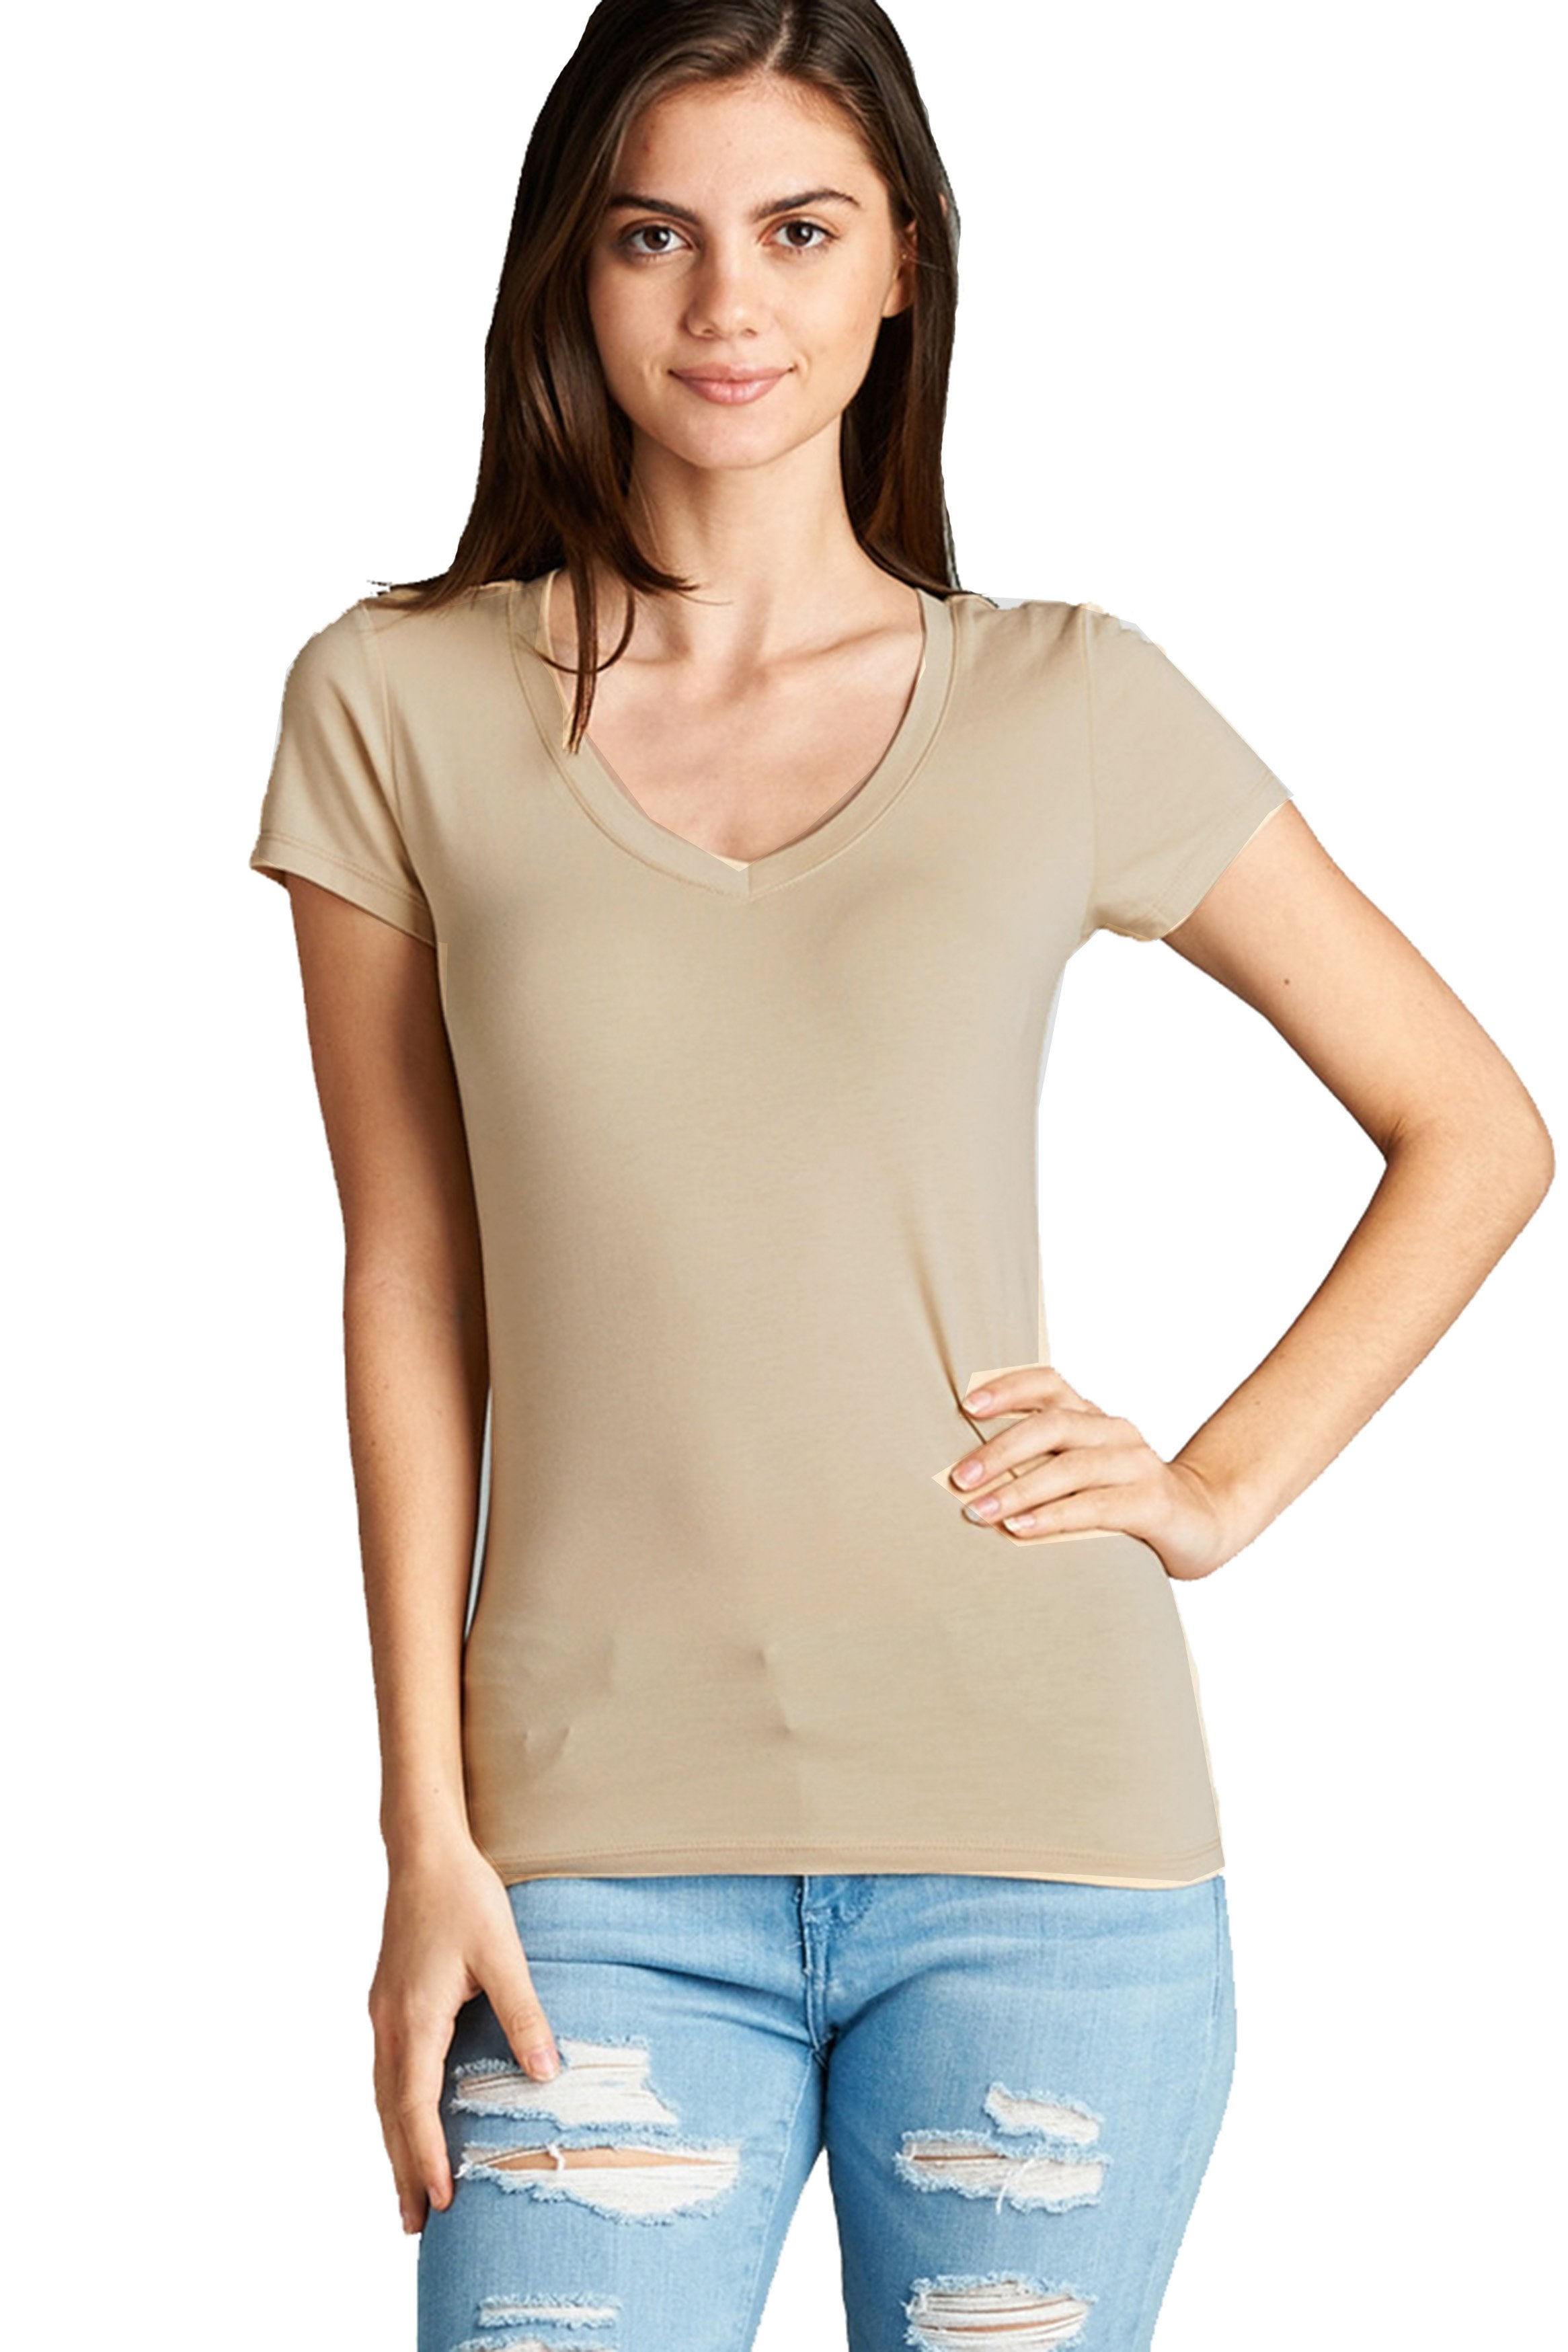 Women's Casual Basic Deep V-Neck Short Sleeve T-Shirt